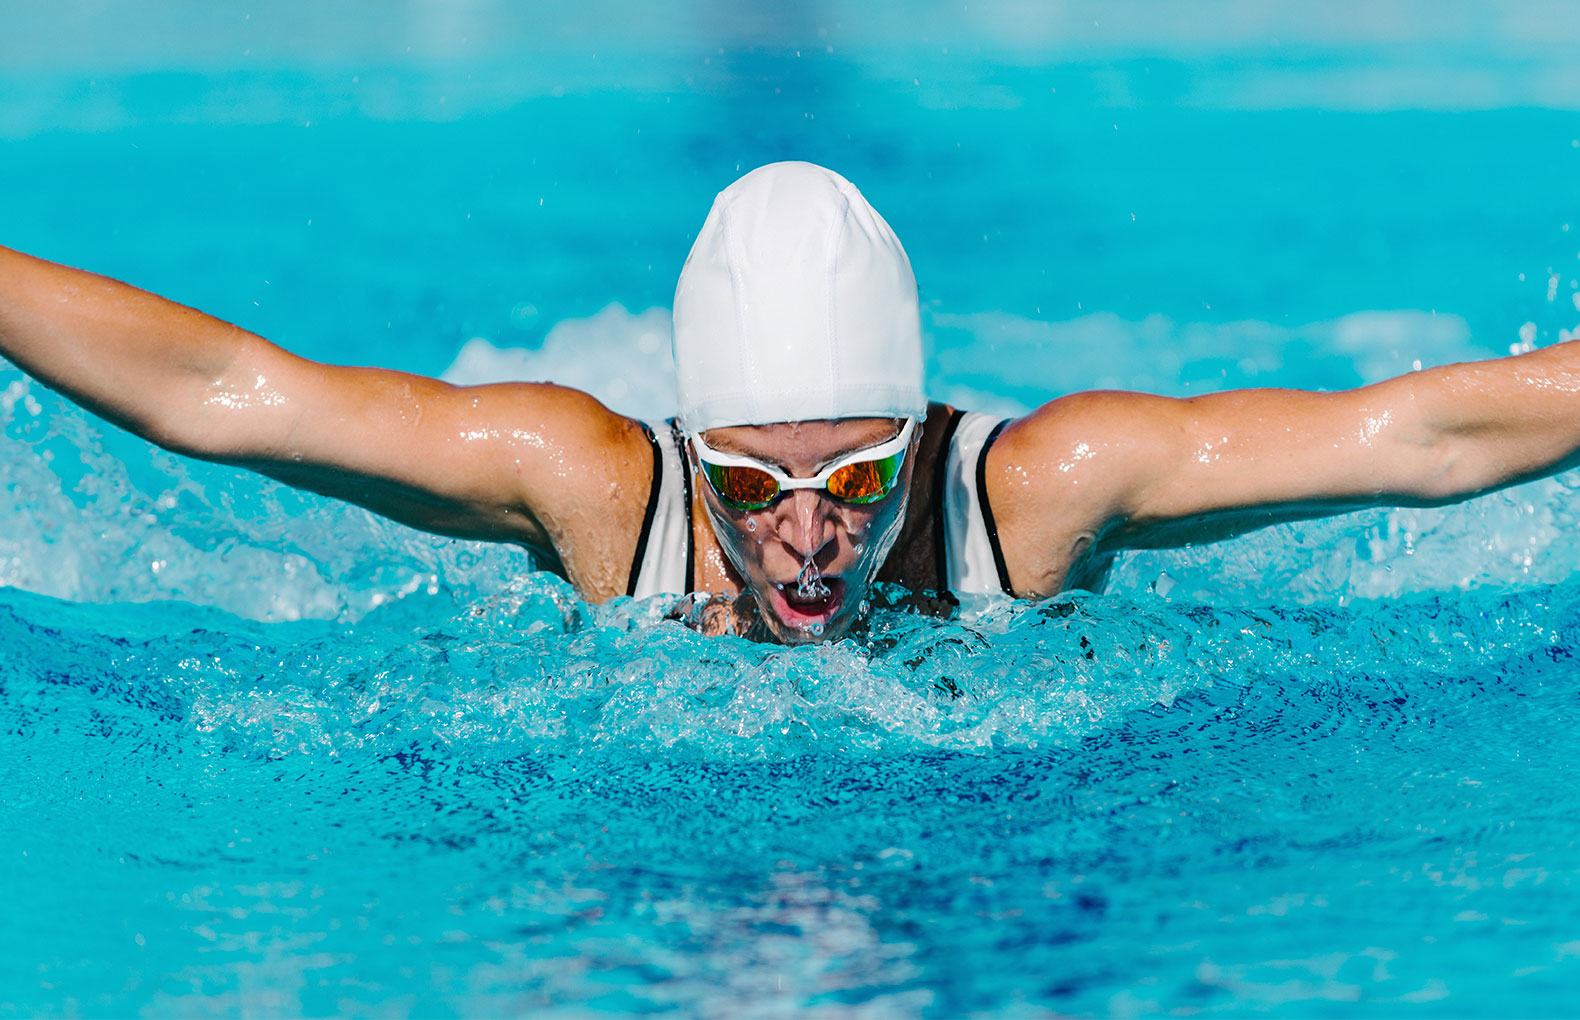 Athlete swimming